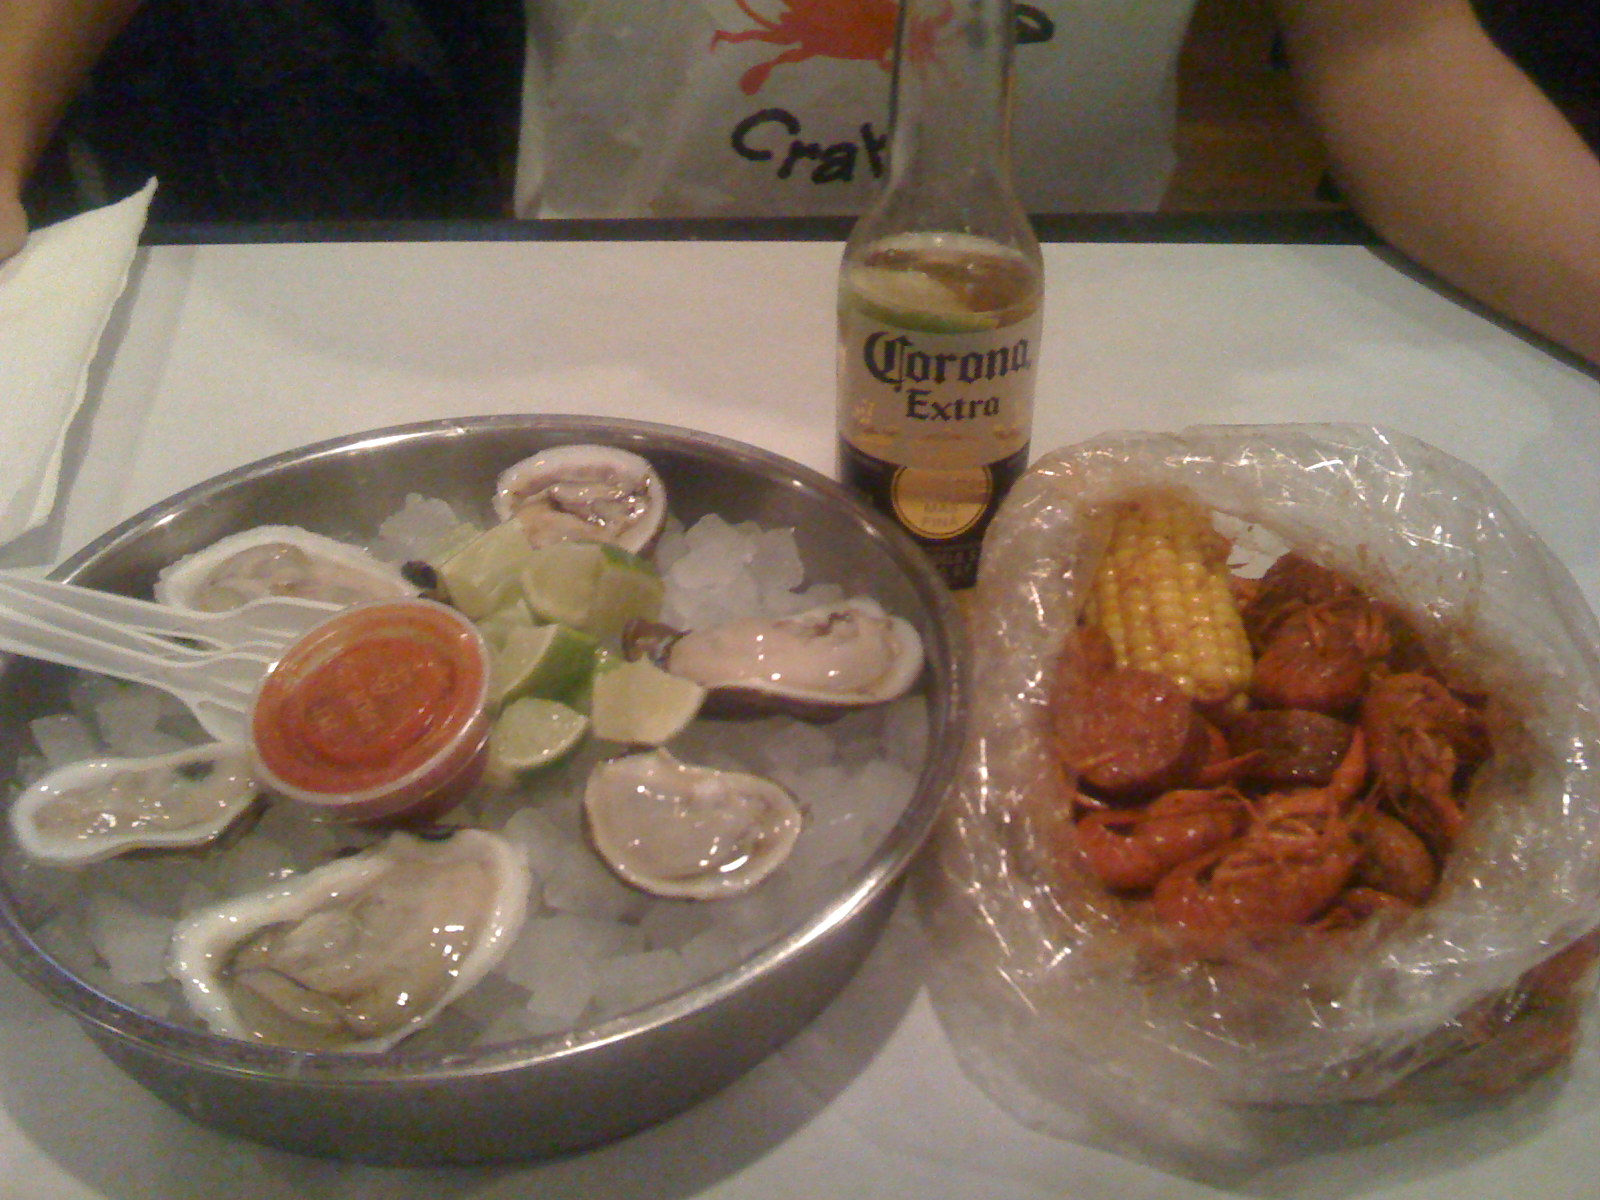 Oysters and crawfish with Corona